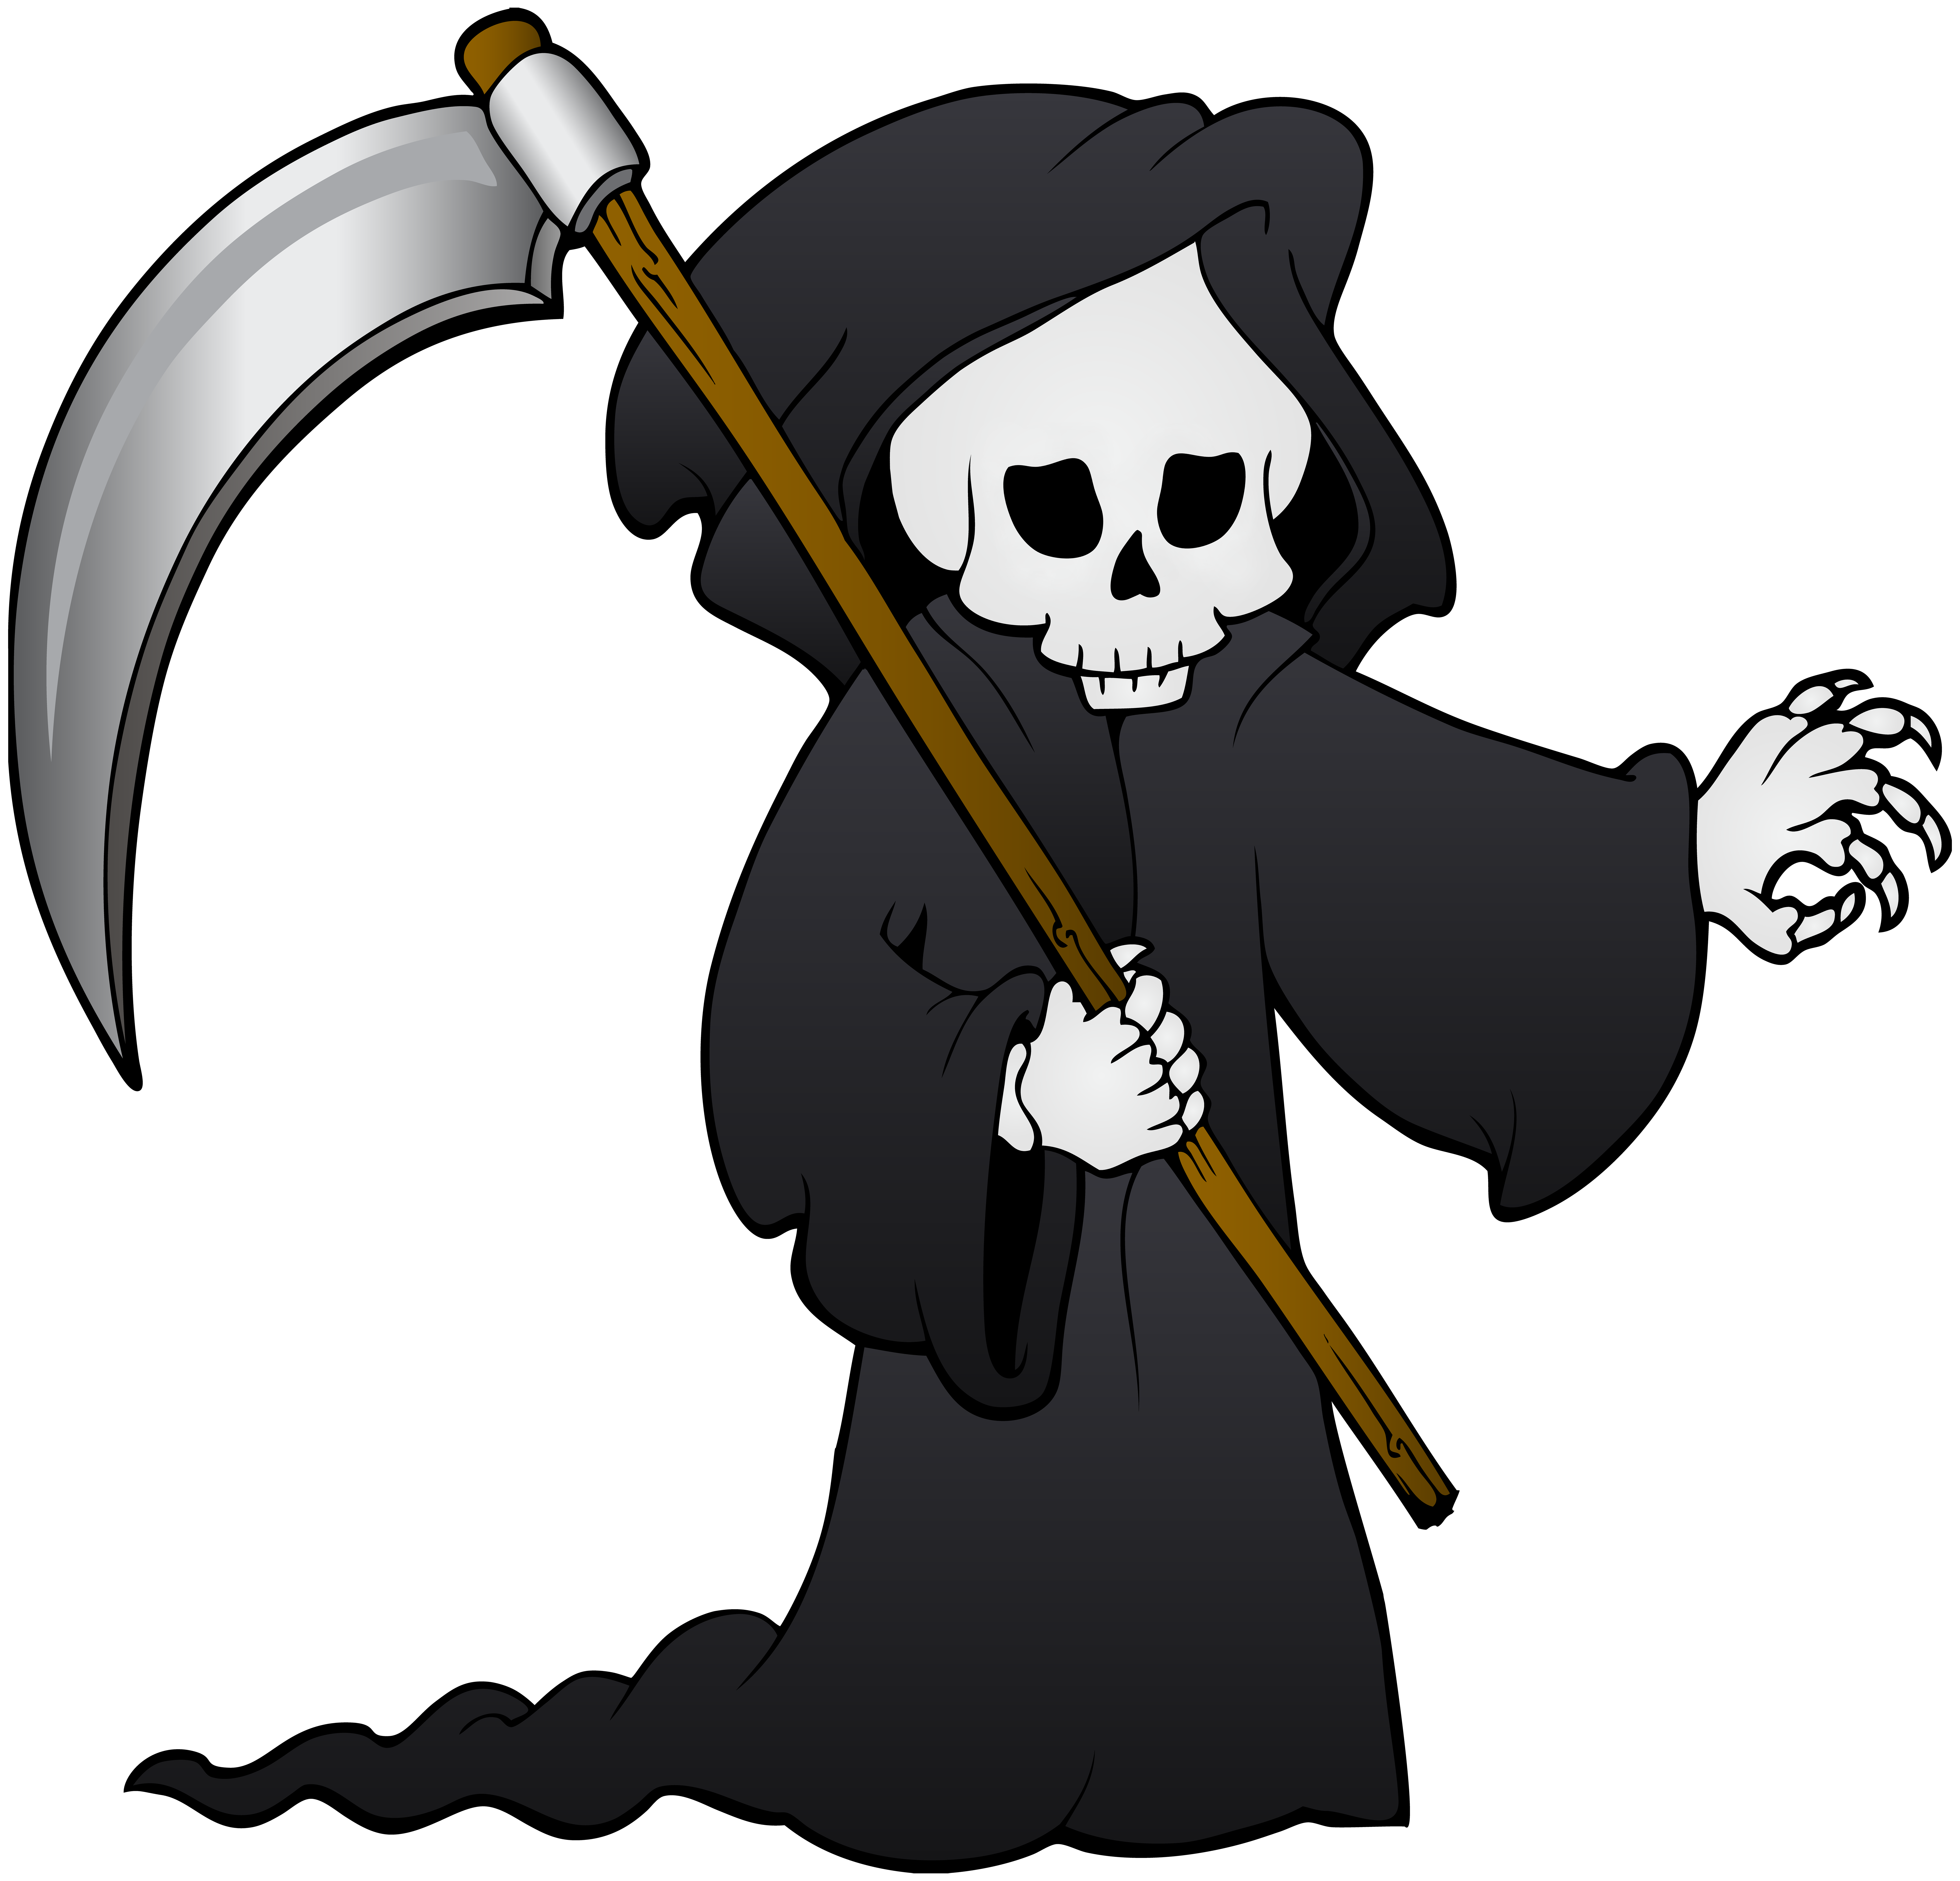 banner free stock Grim reaper clipart. Png clip art image